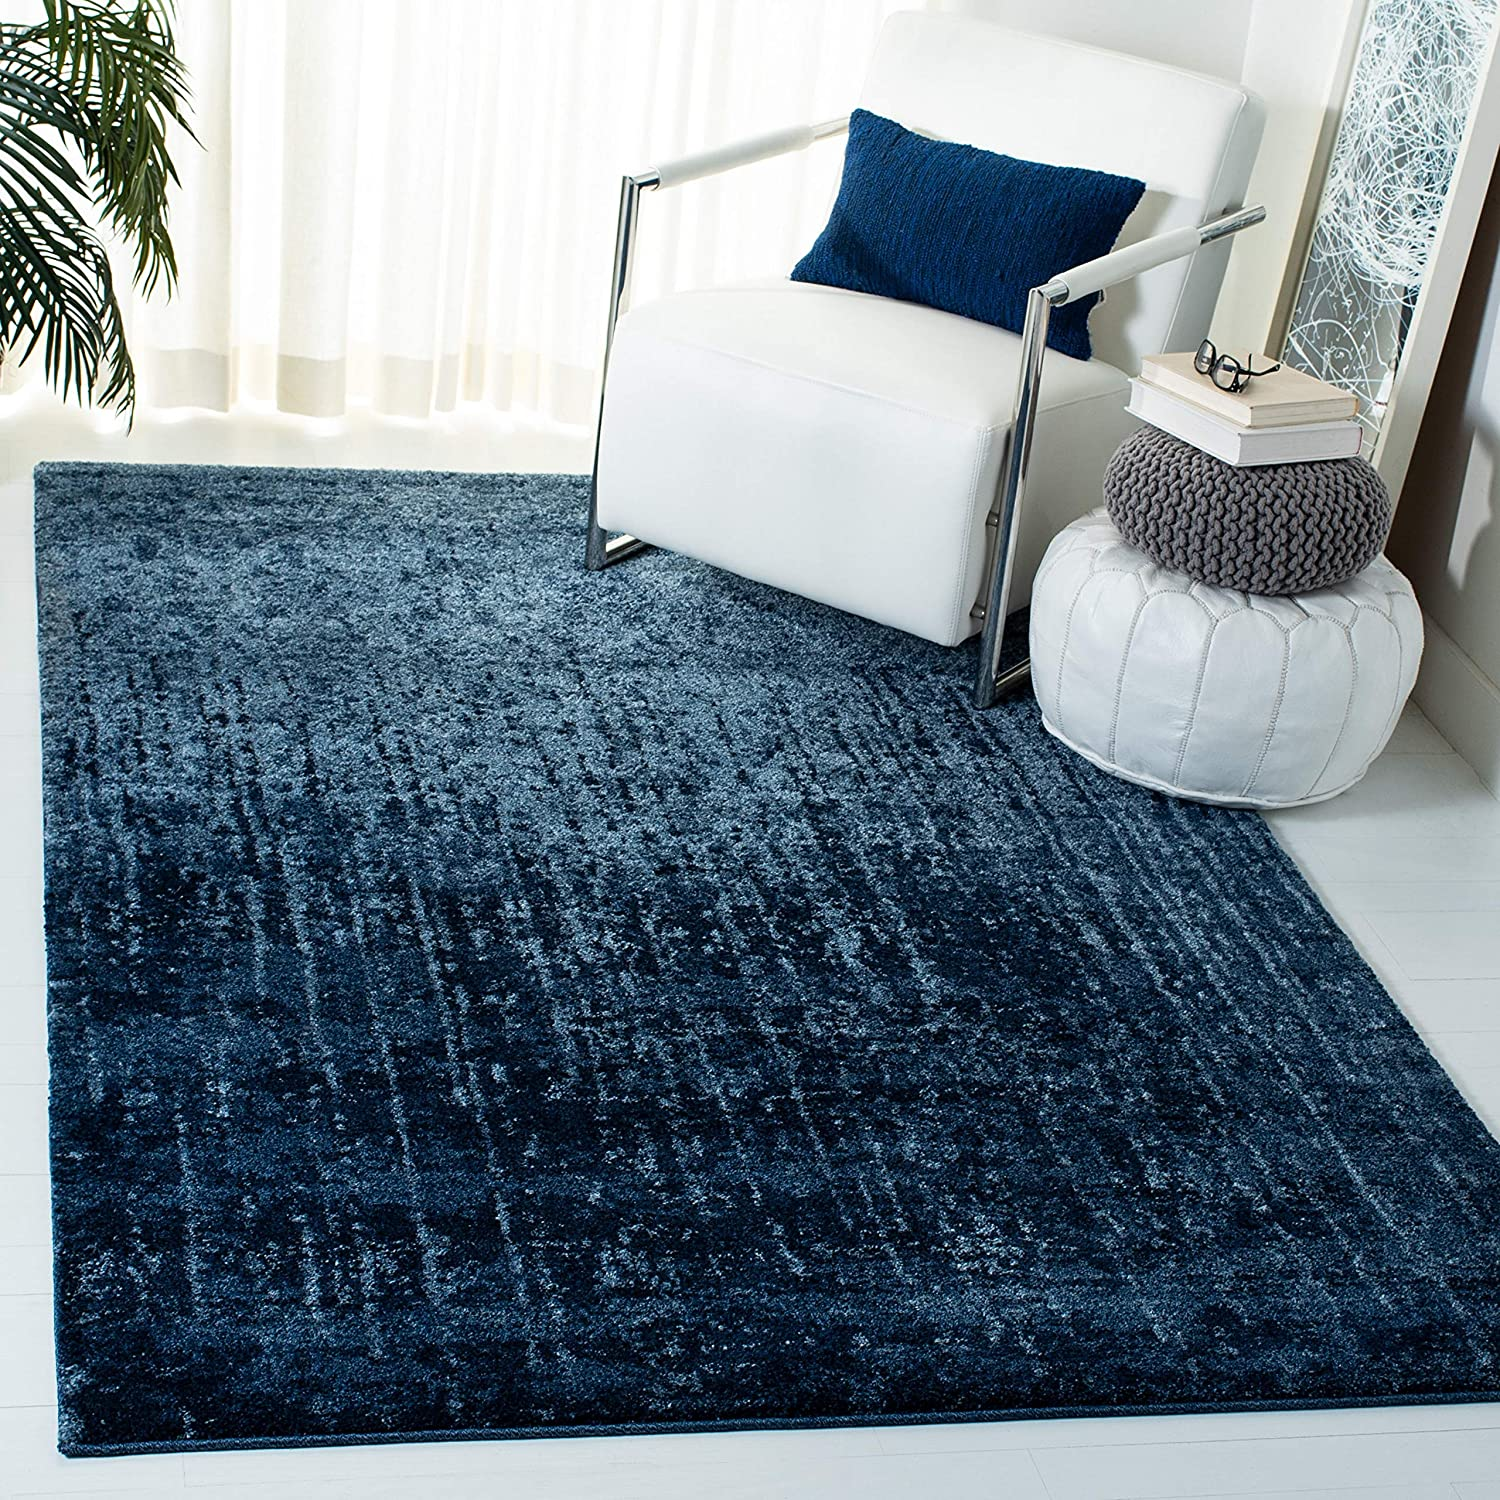 Safavieh Retro Collection Ret2770 Modern Abstract Non Shedding Stain Resistant Living Room Bedroom Area Rug 3 X 5 Light Blue Blue Furniture Decor